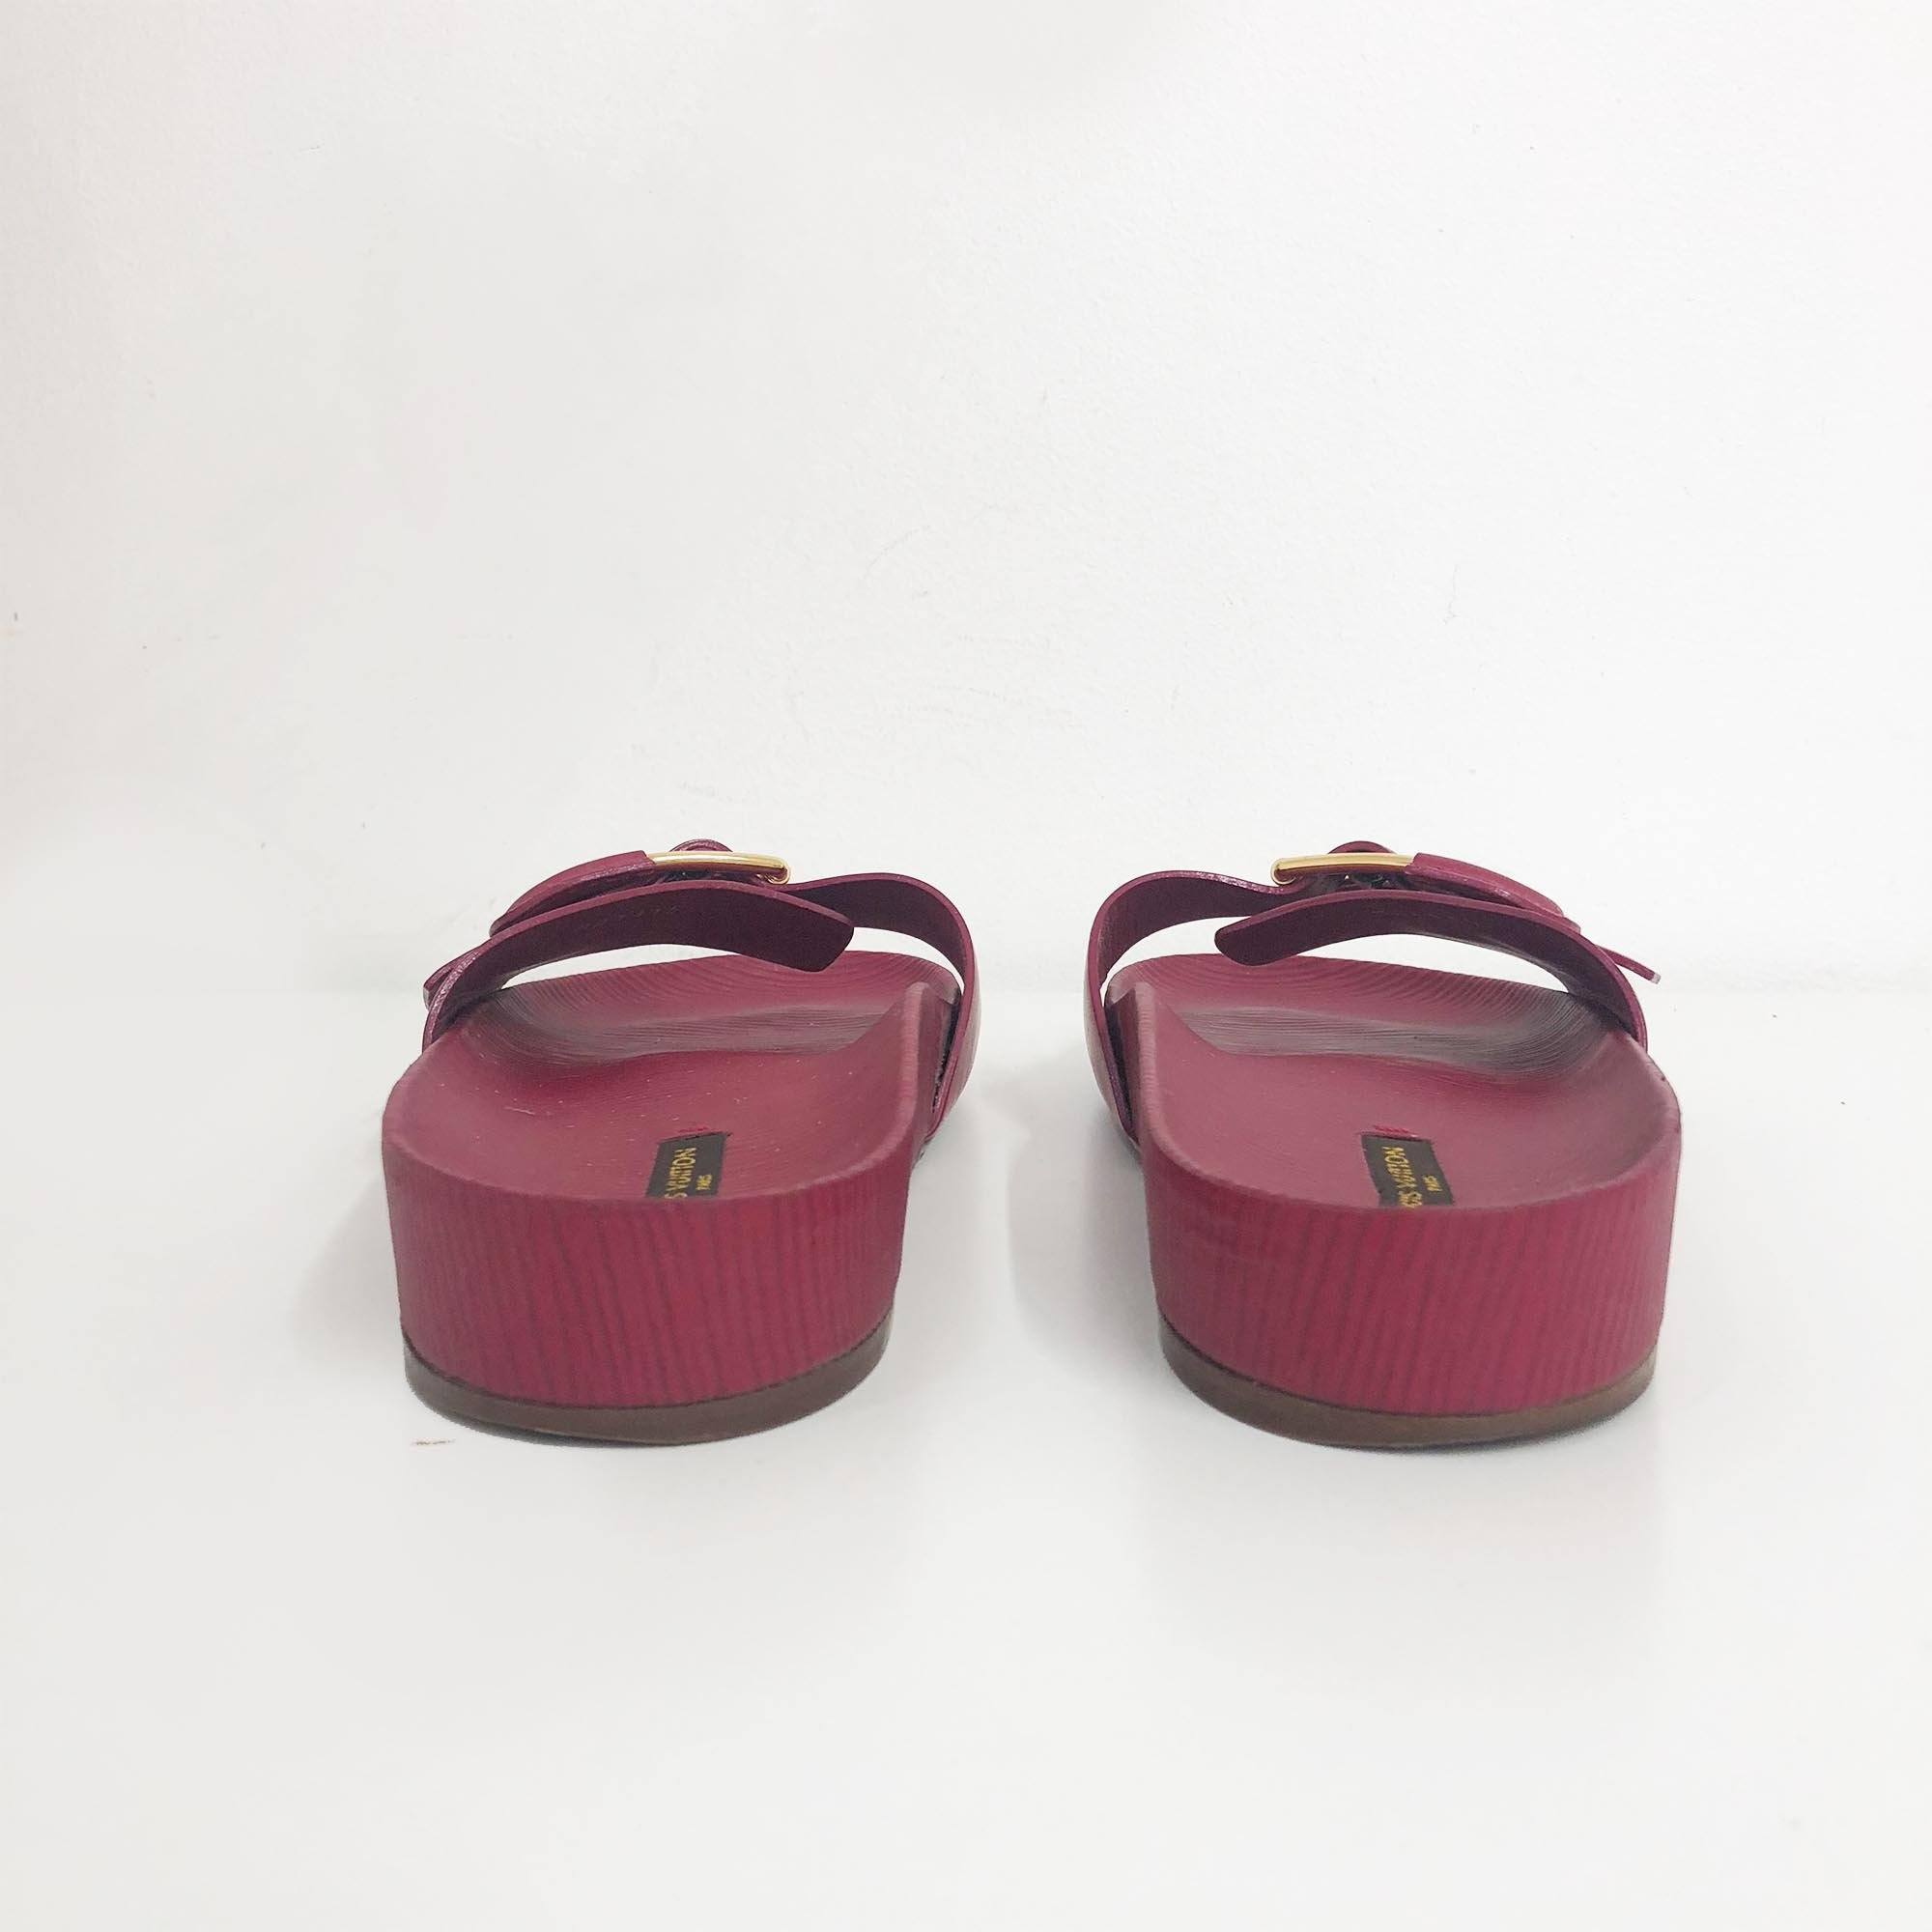 Louis Vuitton Marina Epi Leather Sandals